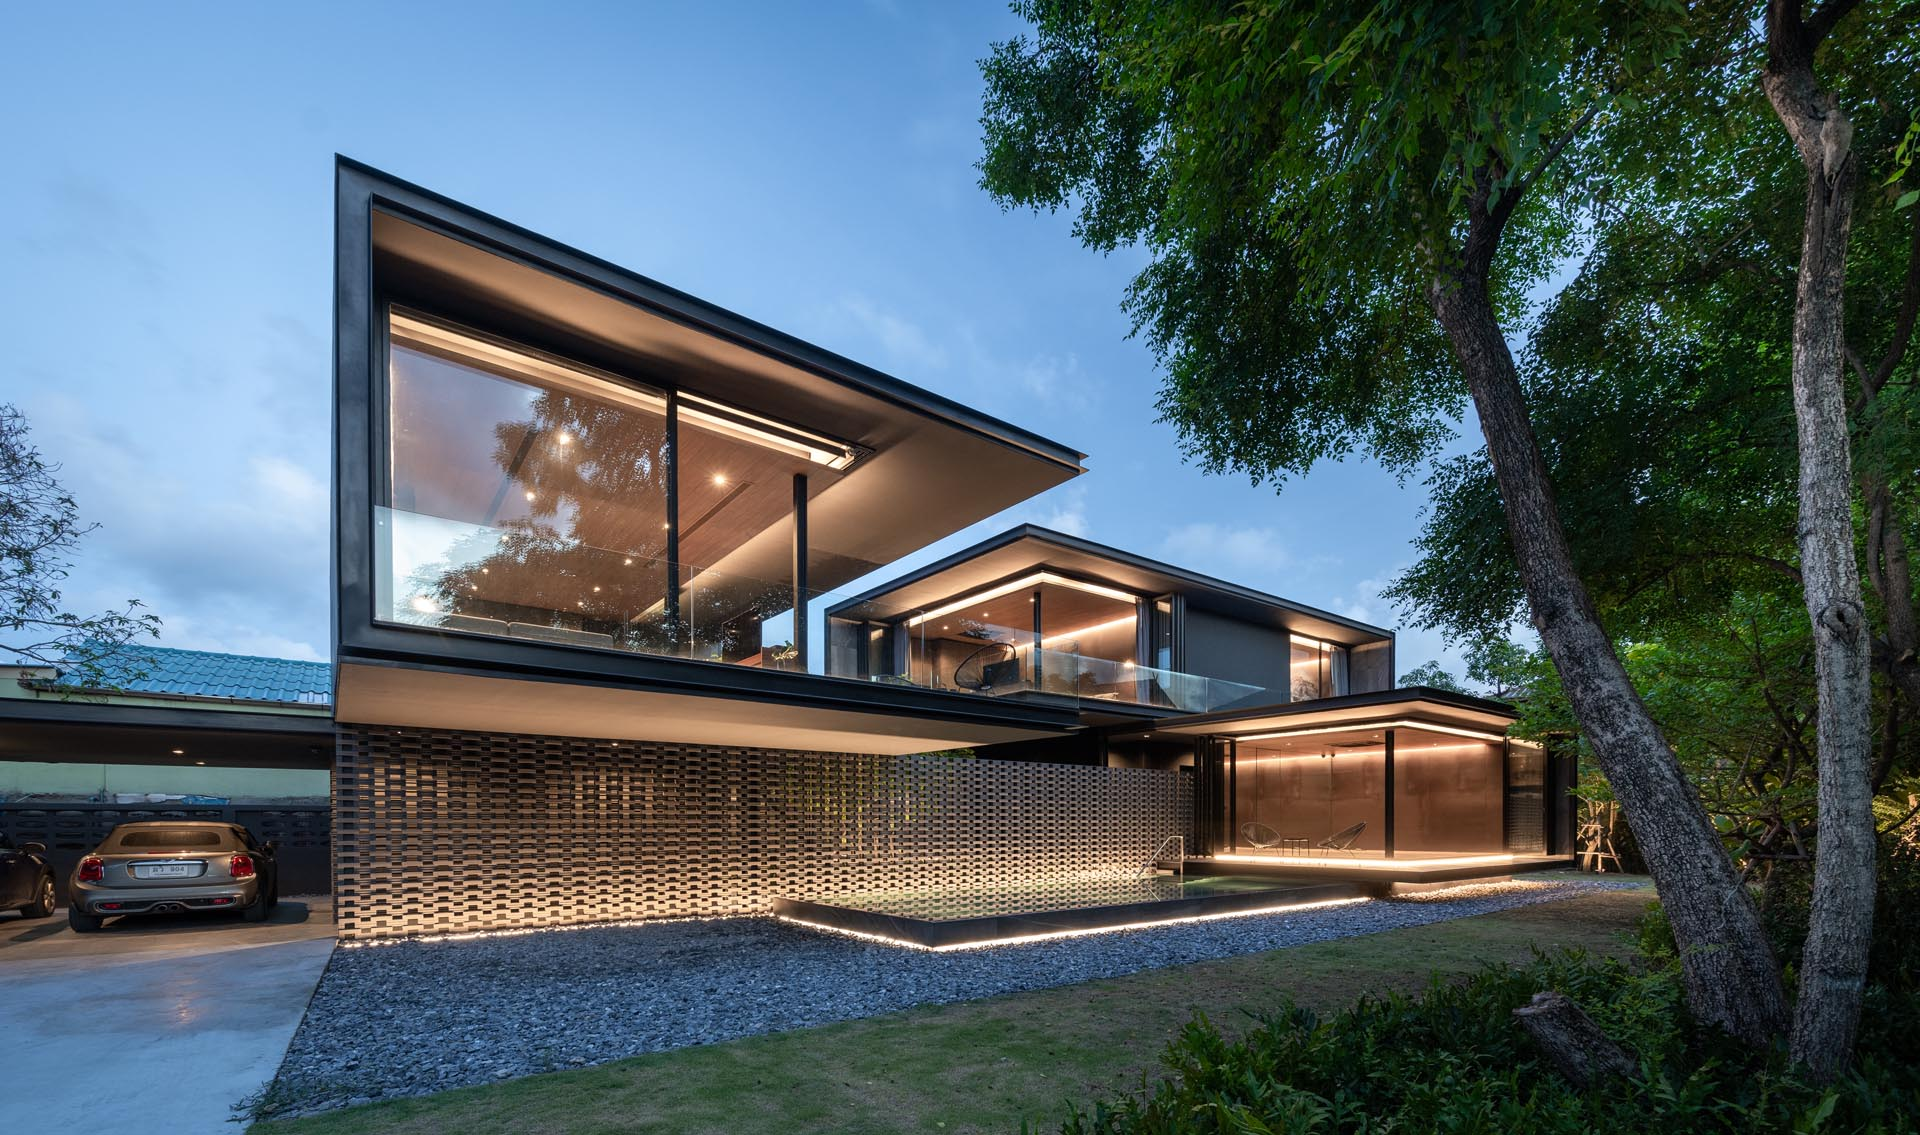 Lighting has been used to highlight the lines of this modern house.